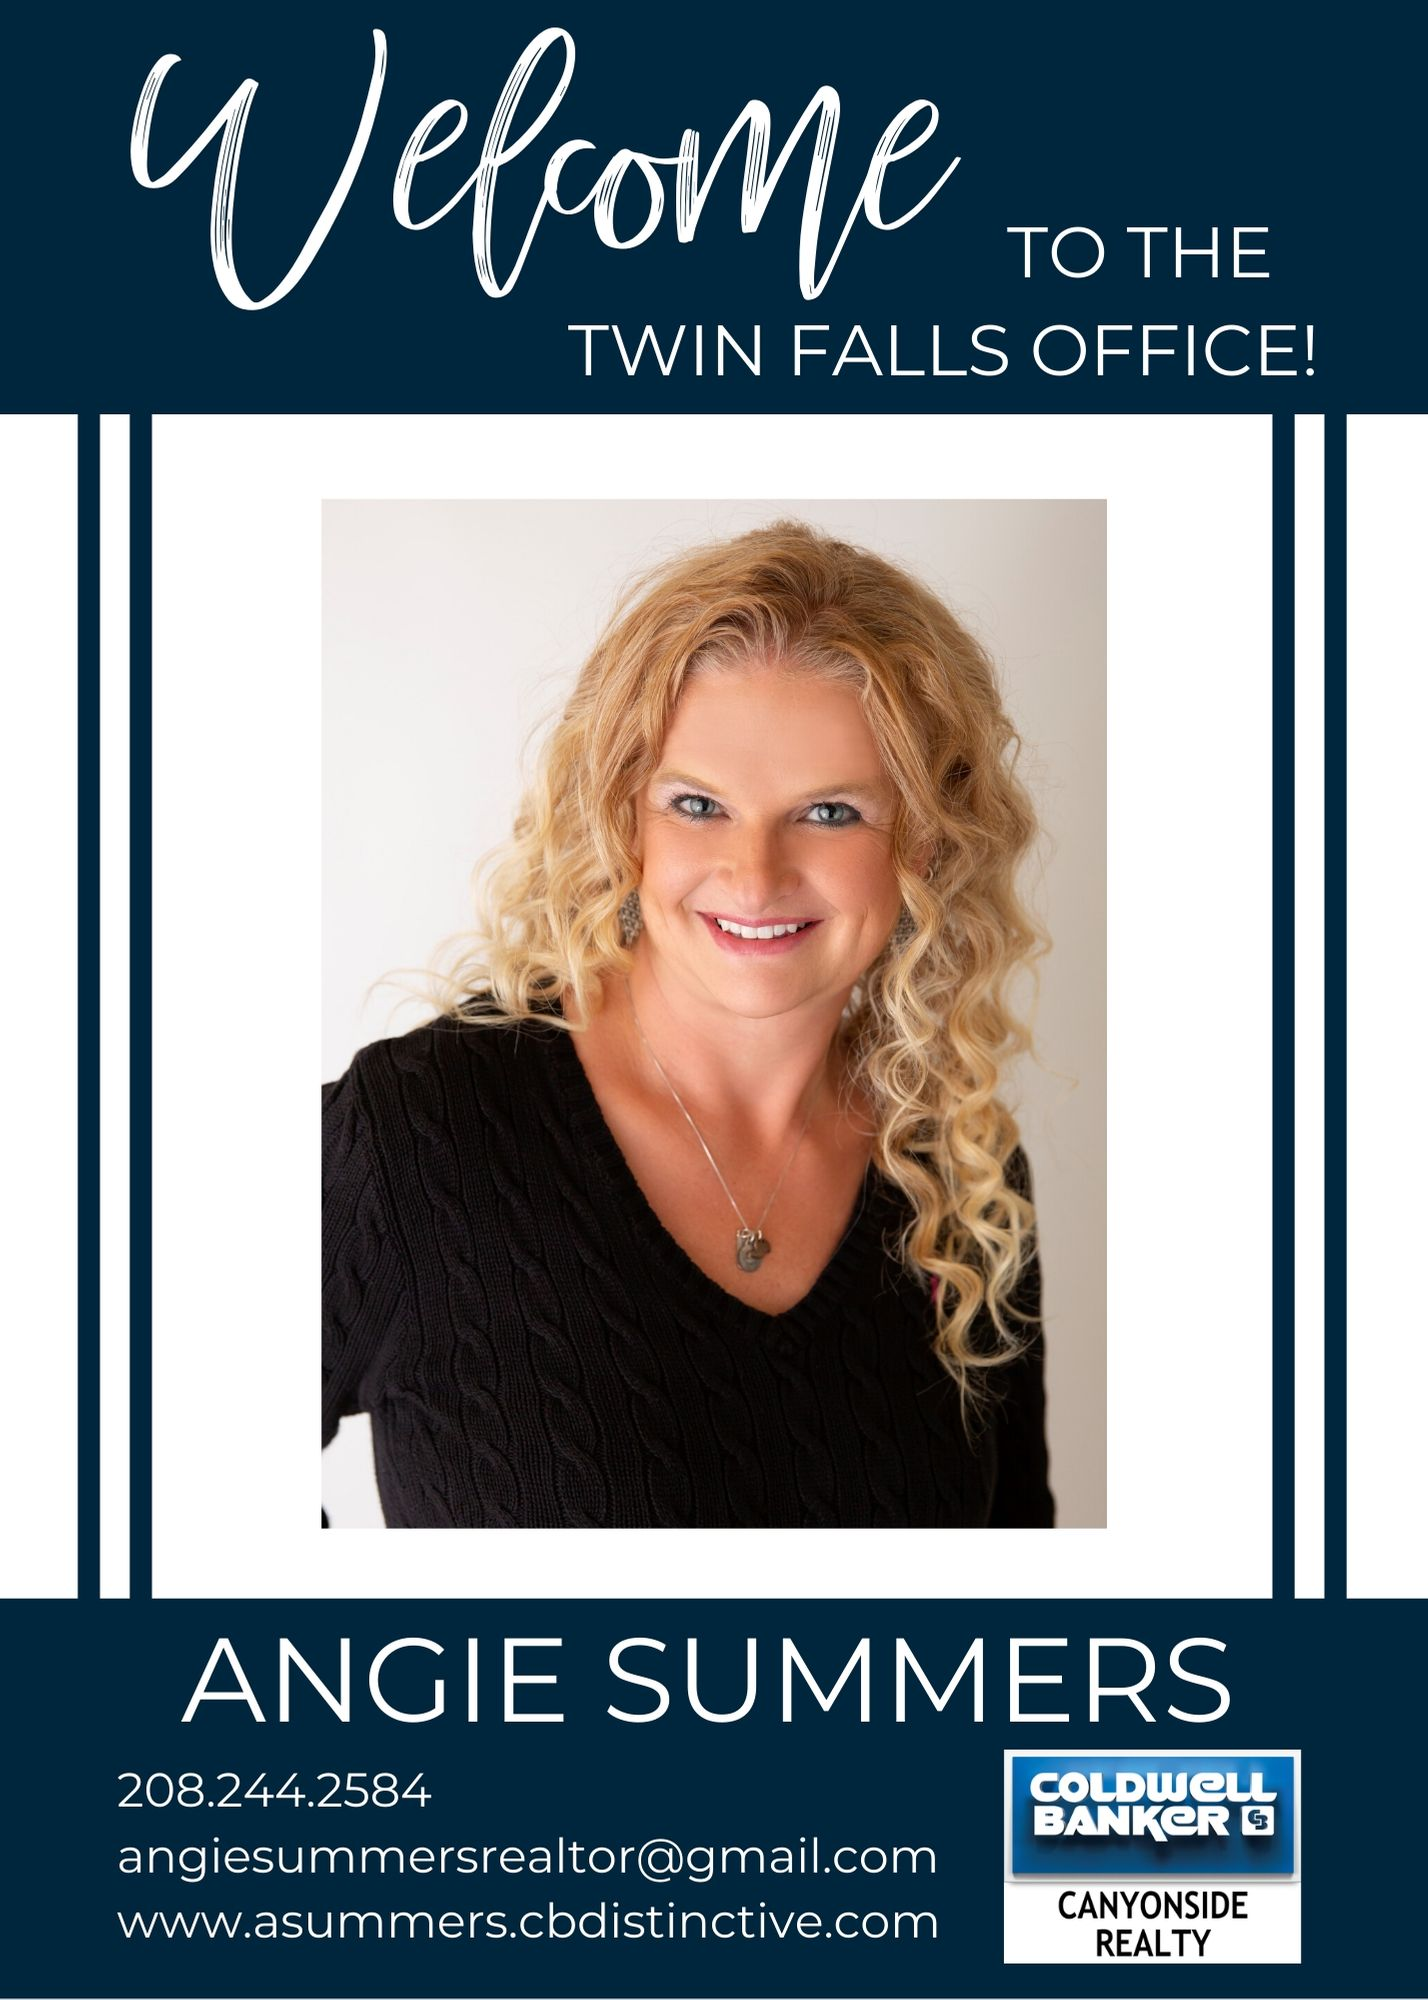 We are excited to announce that Angie Summers has joined our Coldwell Banker family! Main Photo